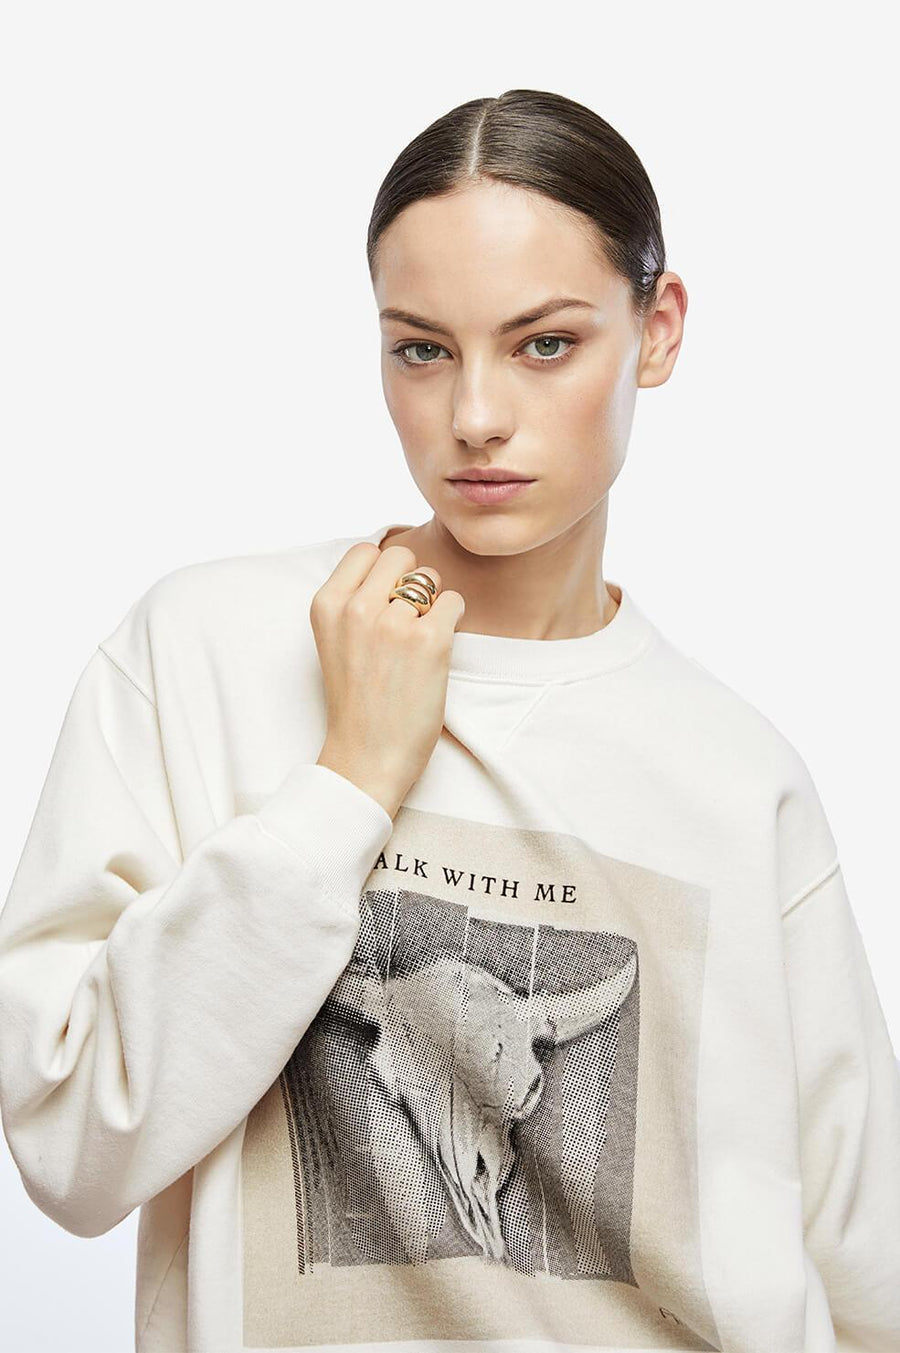 Anine Bing Ramona Sweatshirt Walk With Me at The New Trend